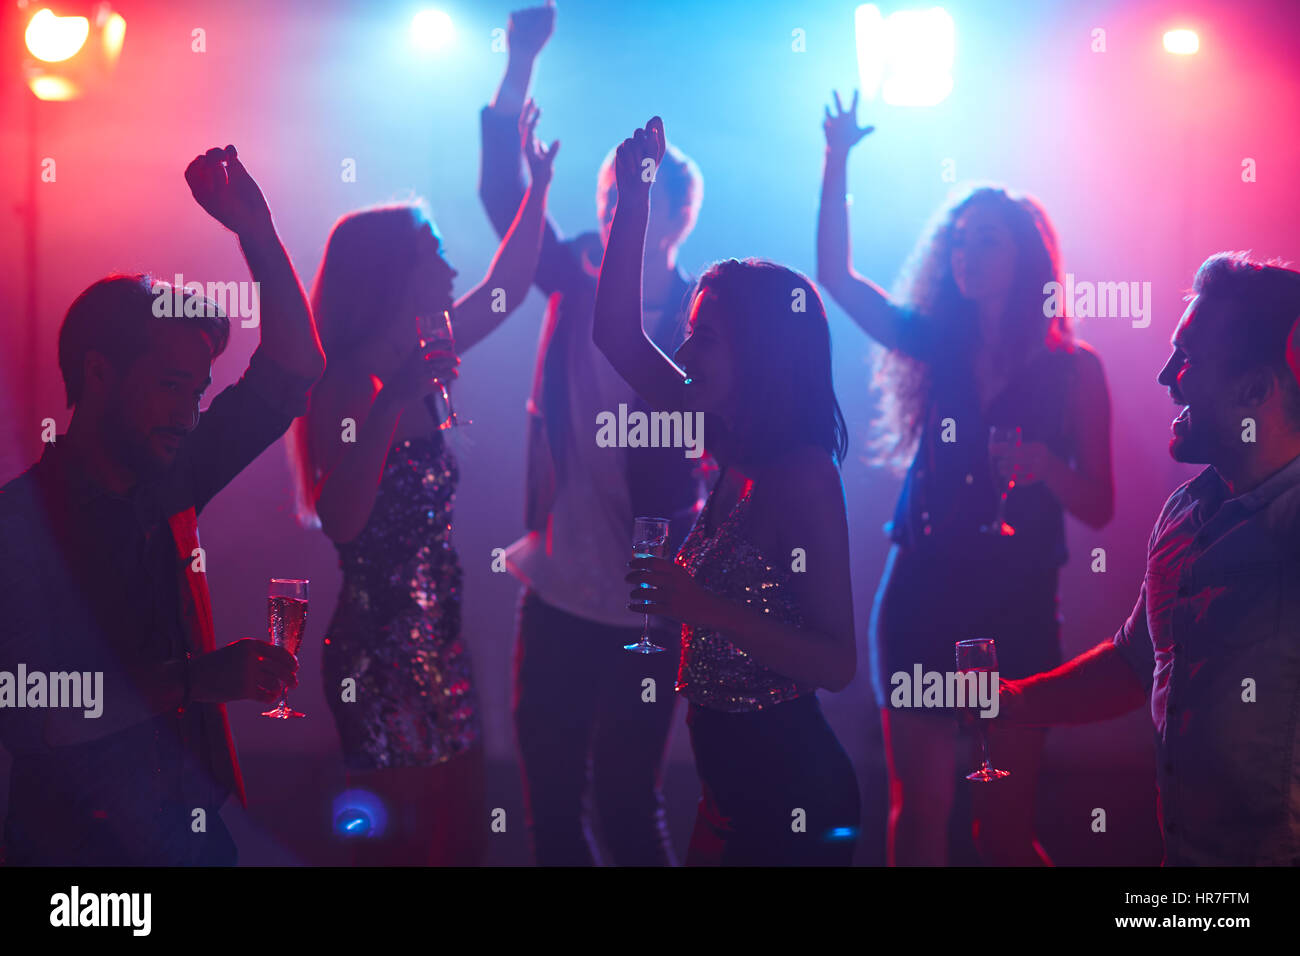 Happy students celebrating prom in night club, dancing with raised hands and holding glasses of champagne - Stock Image